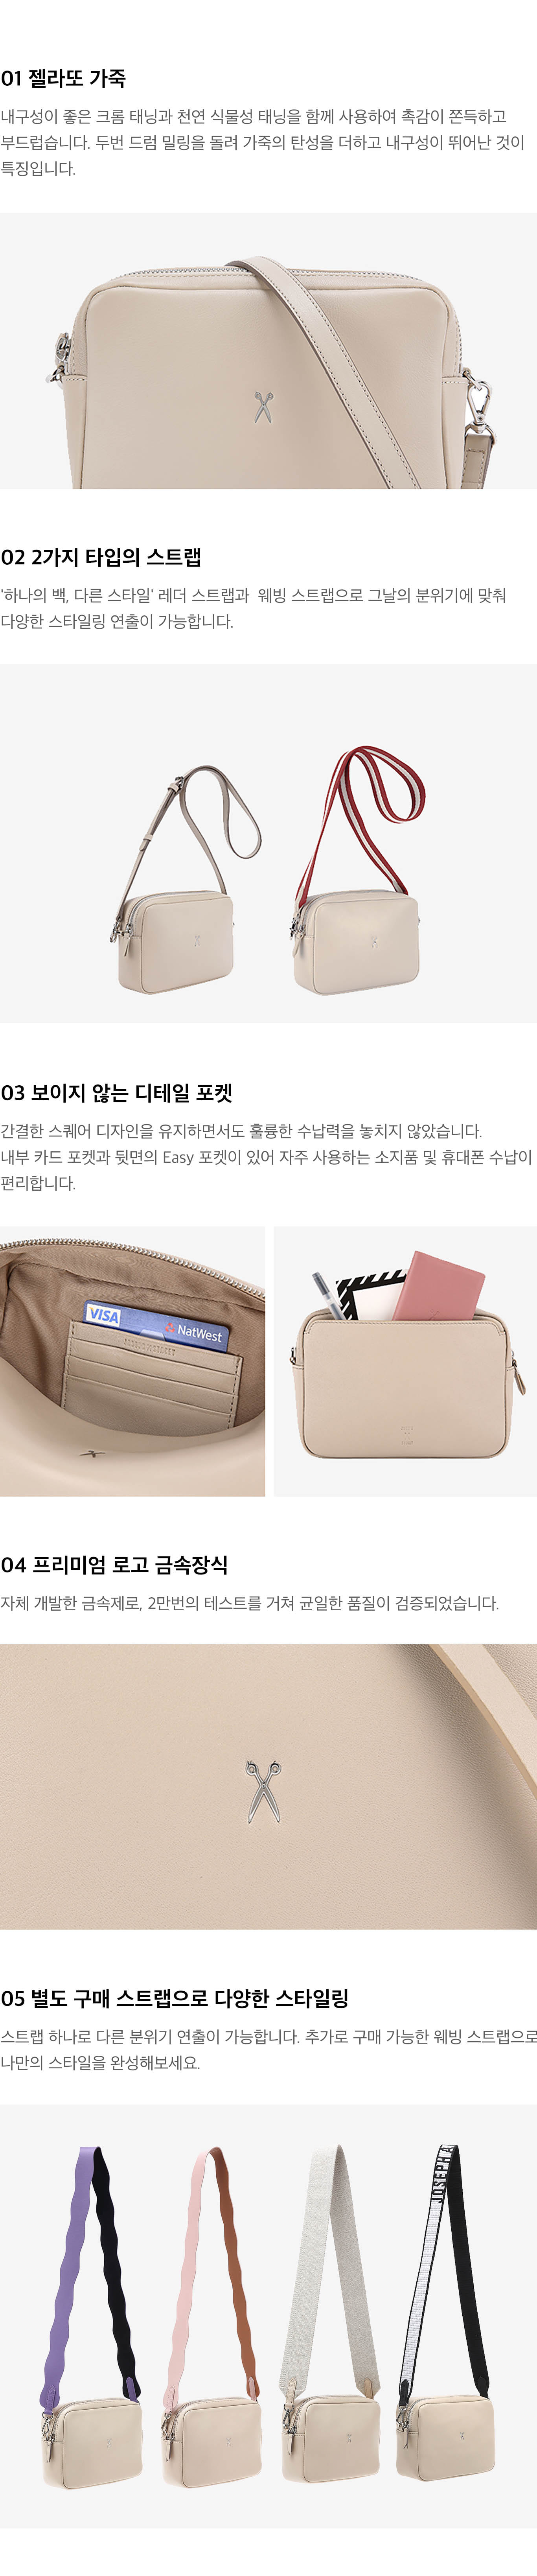 조셉앤스테이시(JOSEPH&STACEY) OZ Mini Square Bag Ecru Beige